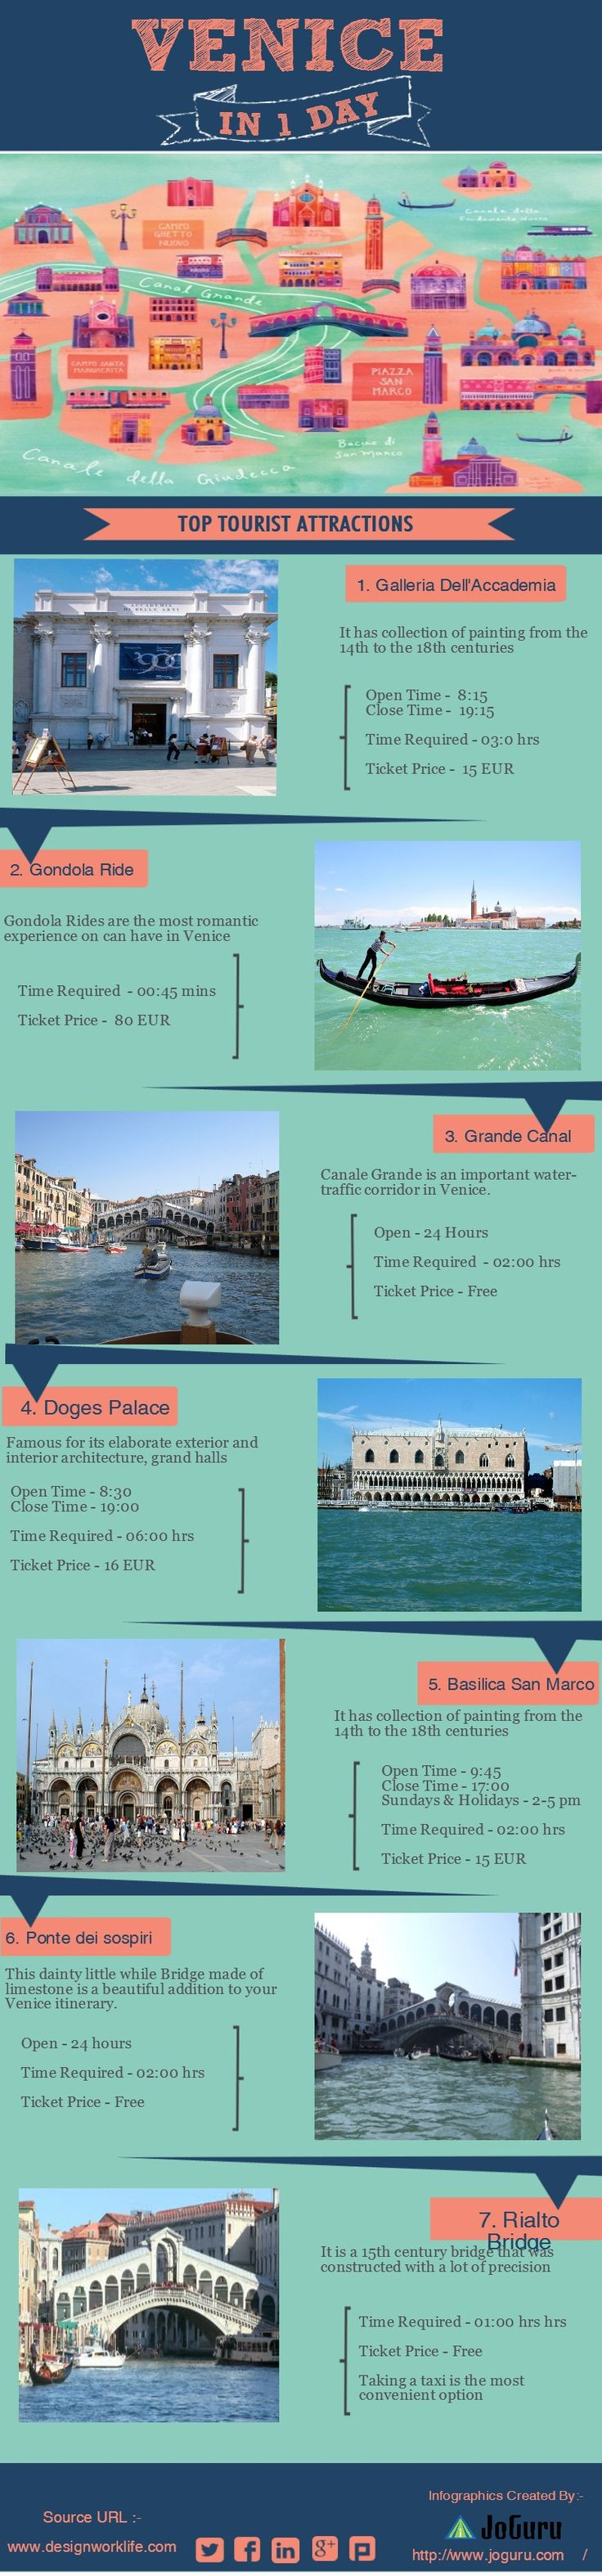 Daycation - Get the most out of your trip to Venice, Italy.